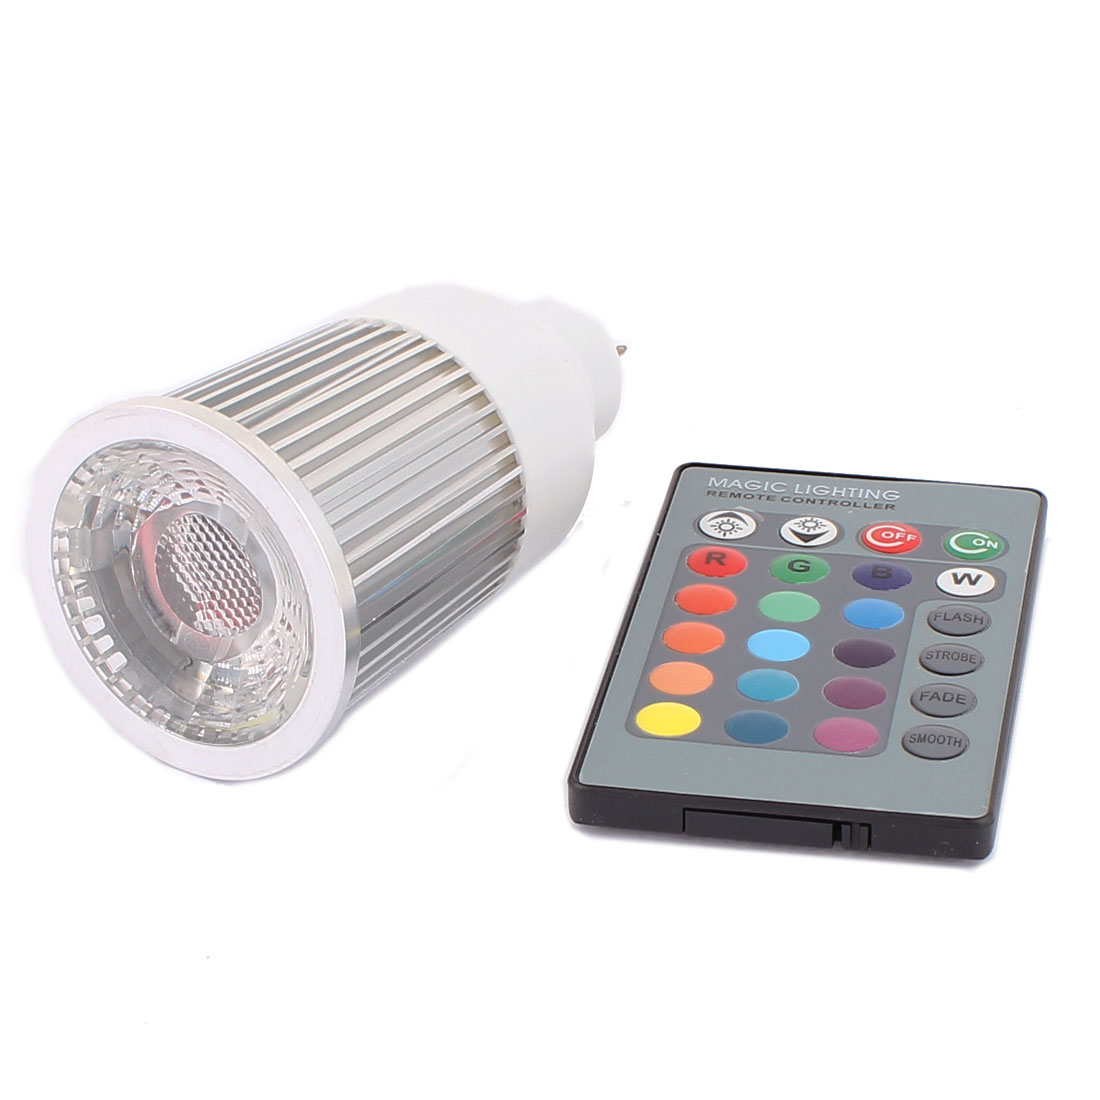 GU5.3 Adapter Decorative Spotlight Light RGB LED Lamp Bulb 5W AC 85V-265V w Remote Controller